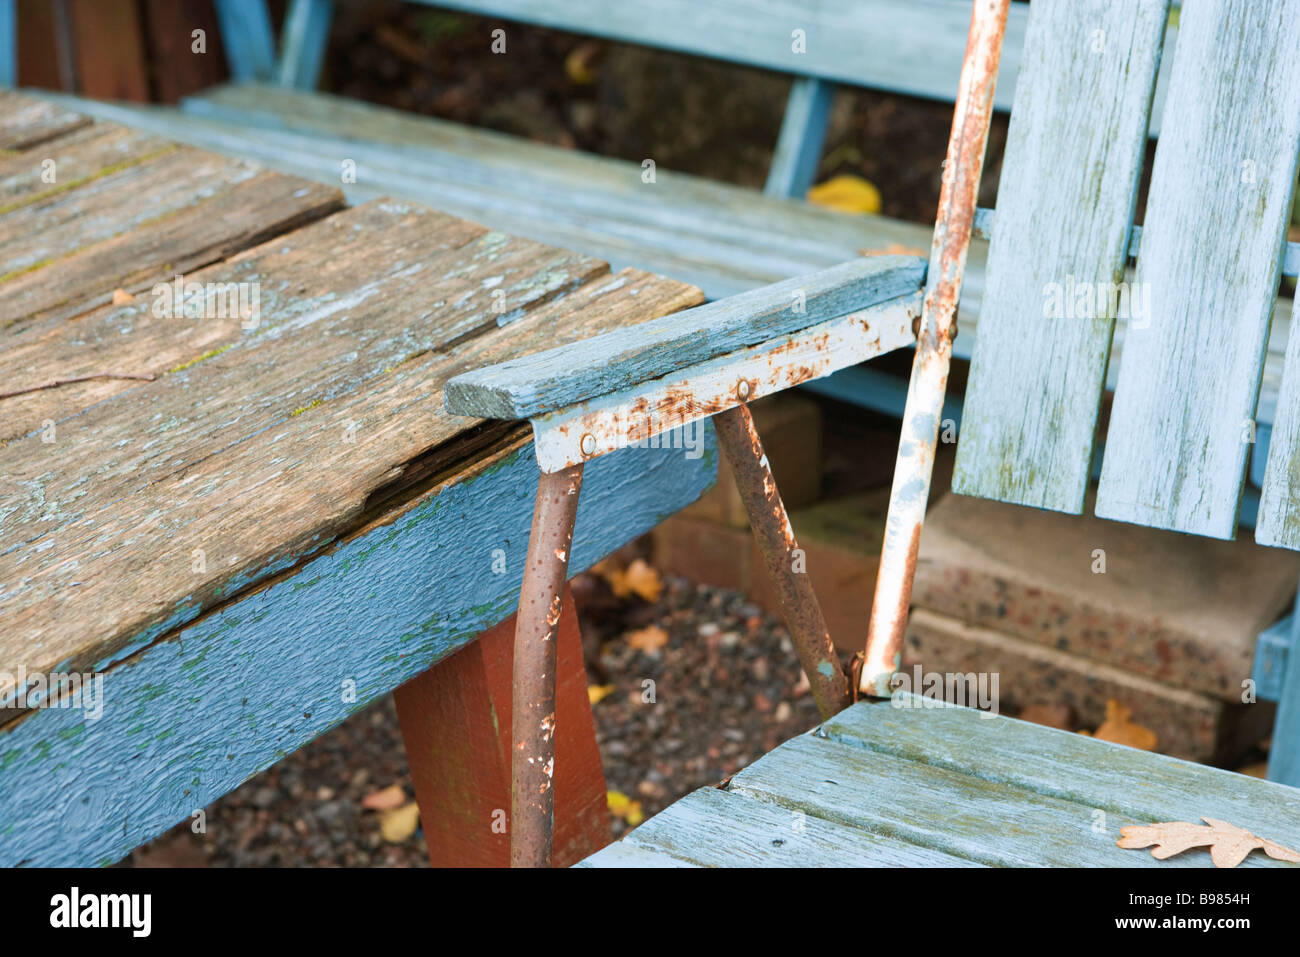 Dilapidated chair and table, close-up - Stock Image